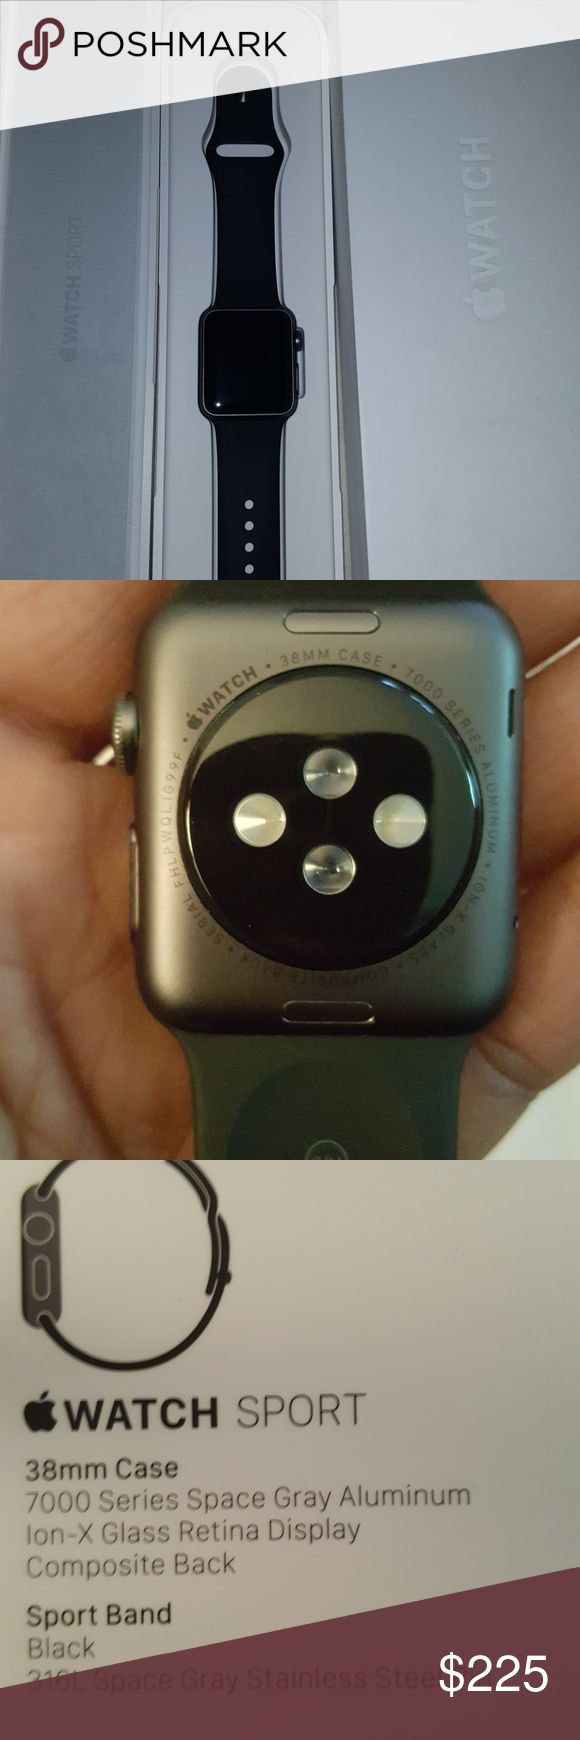 Apple Watch Sport S1 Worn once. My iPhone is for work only, so I have no use for this. Price firm. No trades. Apple Accessories Watches